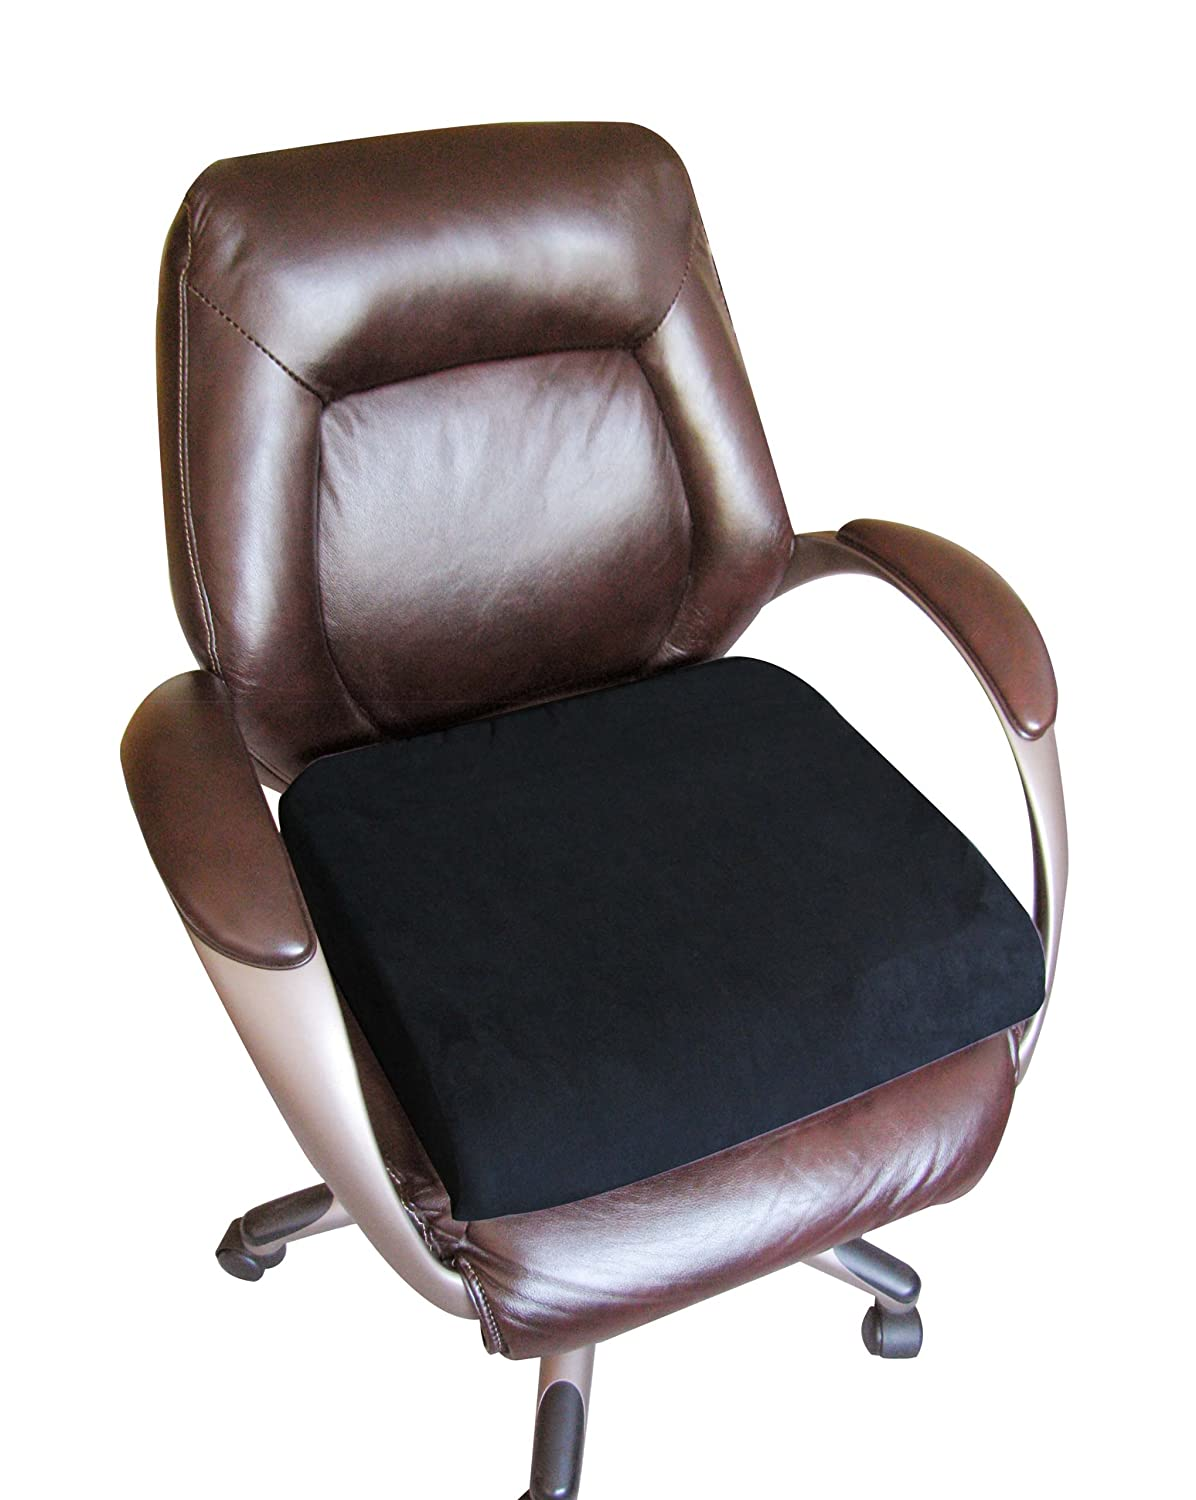 Ergonomic Chair Cushion 5 Top Best Office Chair Cushions That Are Comfortable